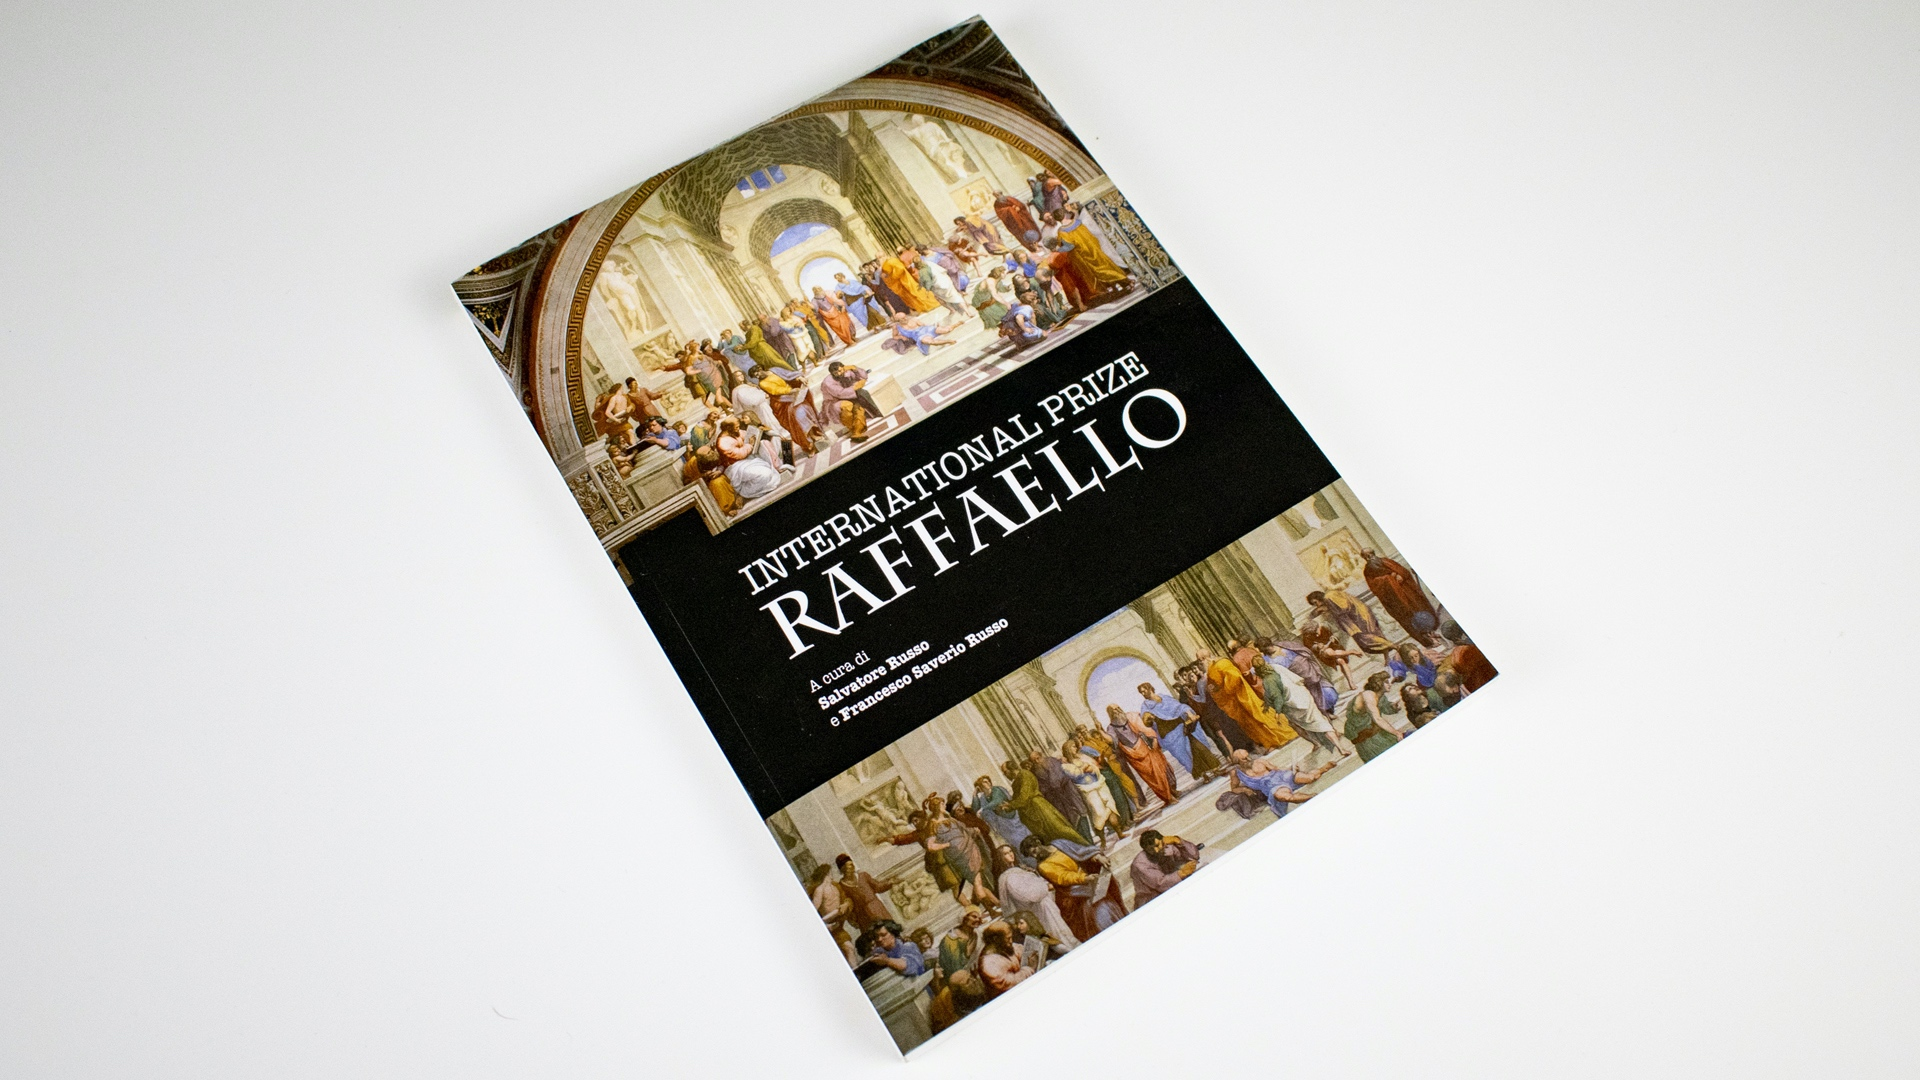 International Prize Raffaello Catalog